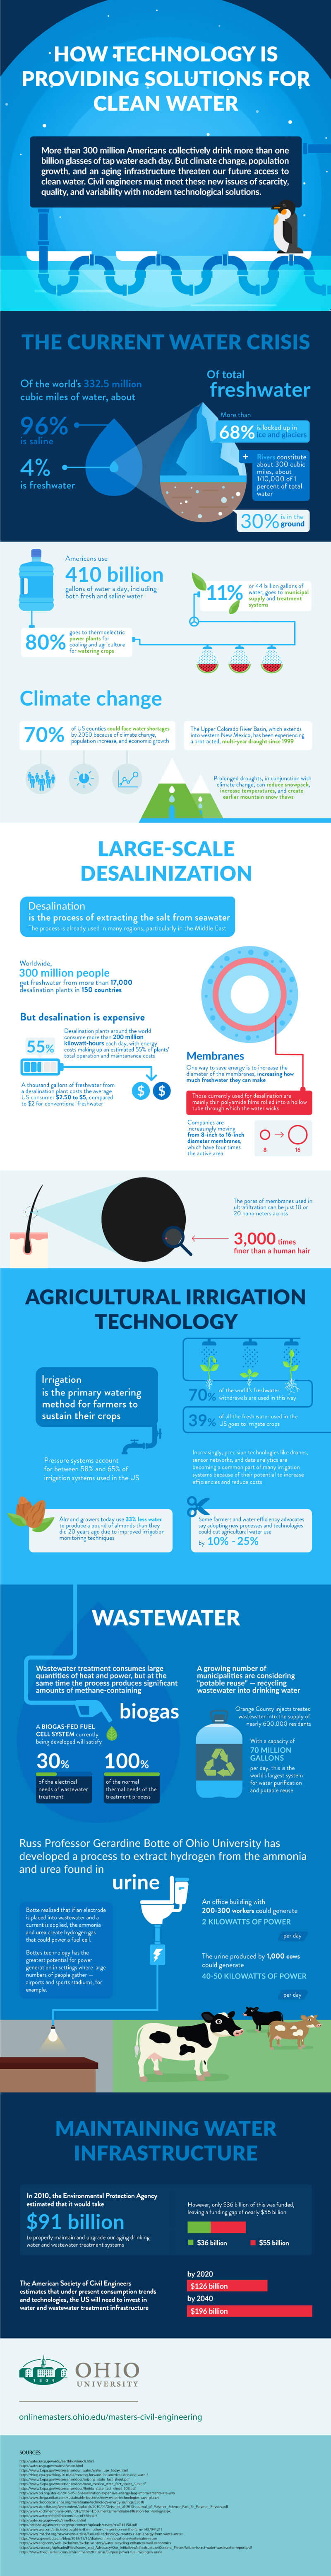 How technology is providing solutions for clean water infographic